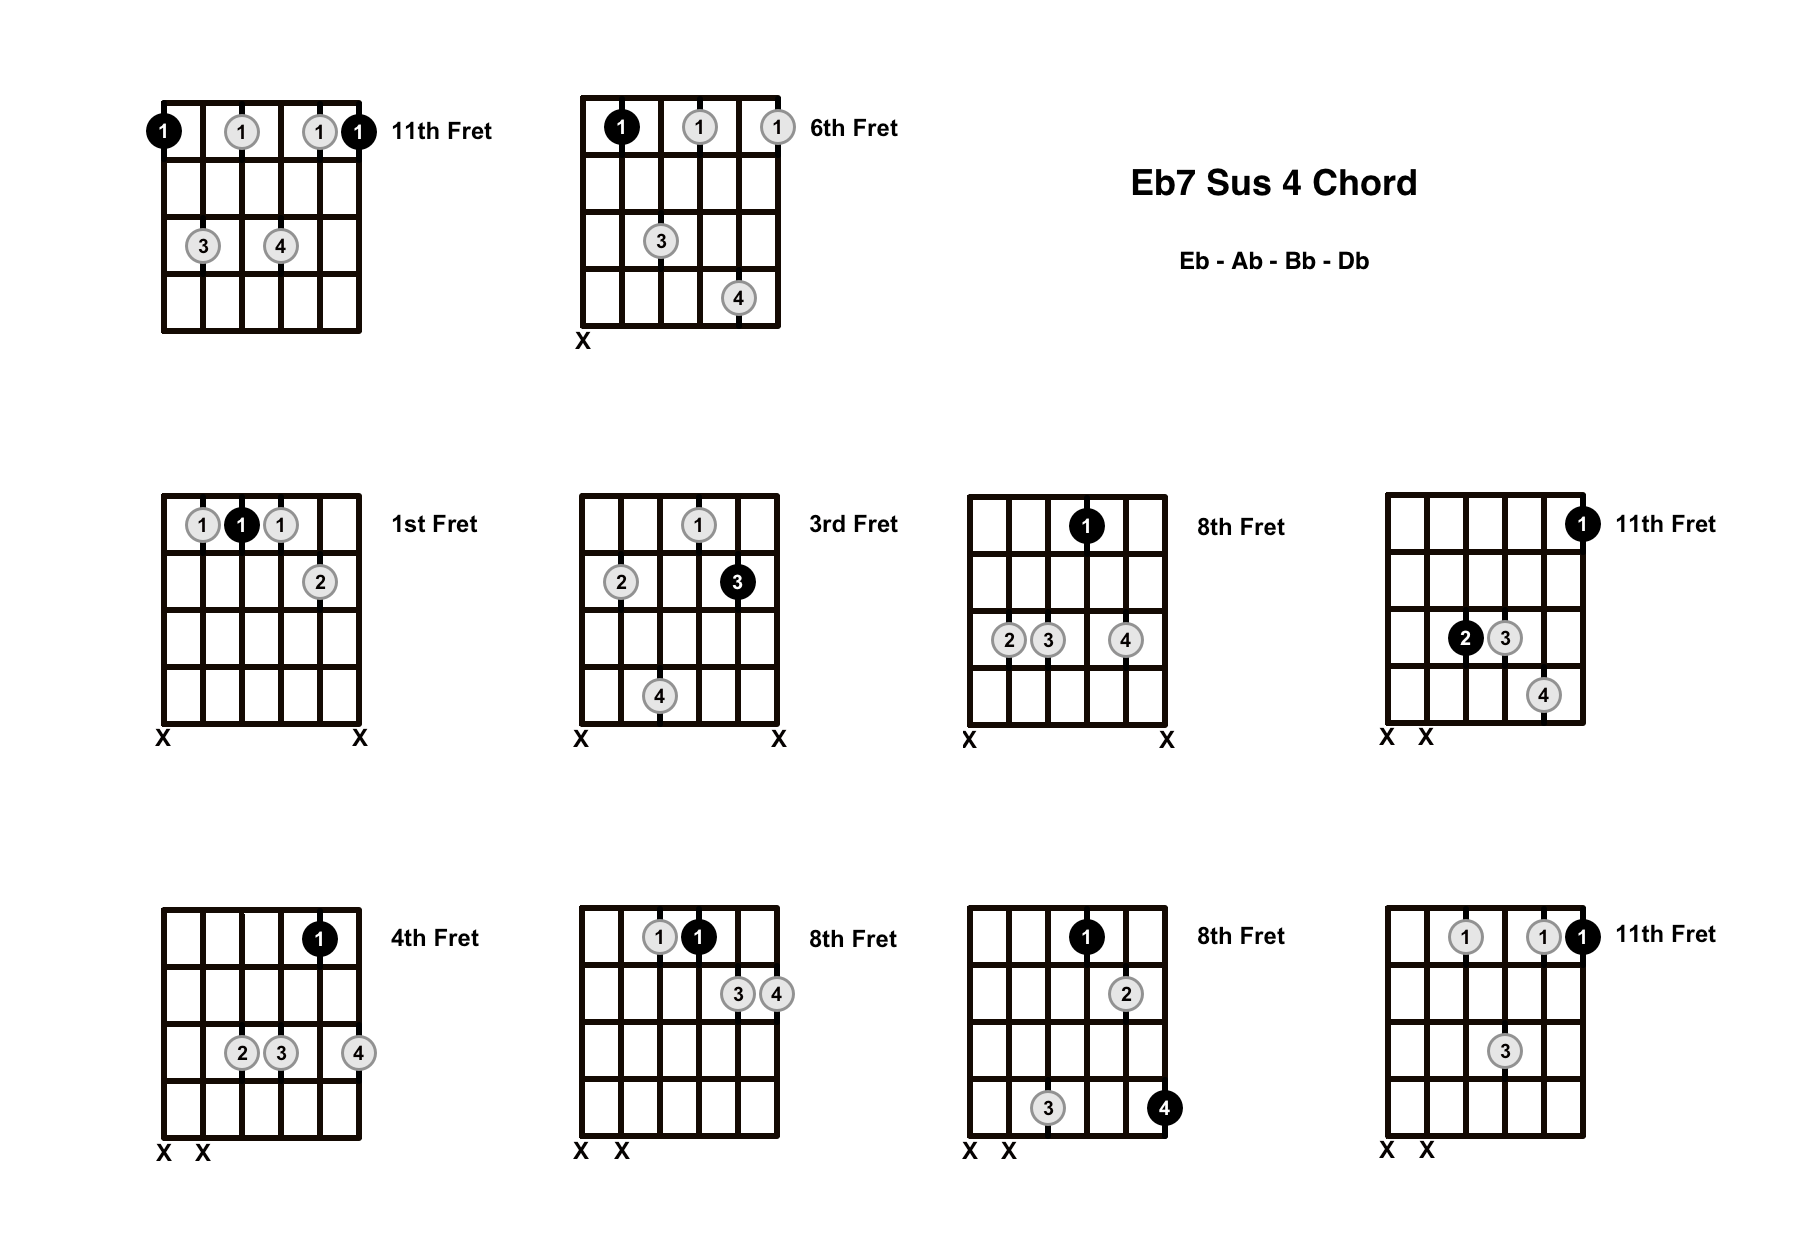 Eb7 Sus 4 Chord On The Guitar (E Flat 7 Suspended 4) – Diagrams, Finger Positions and Theory